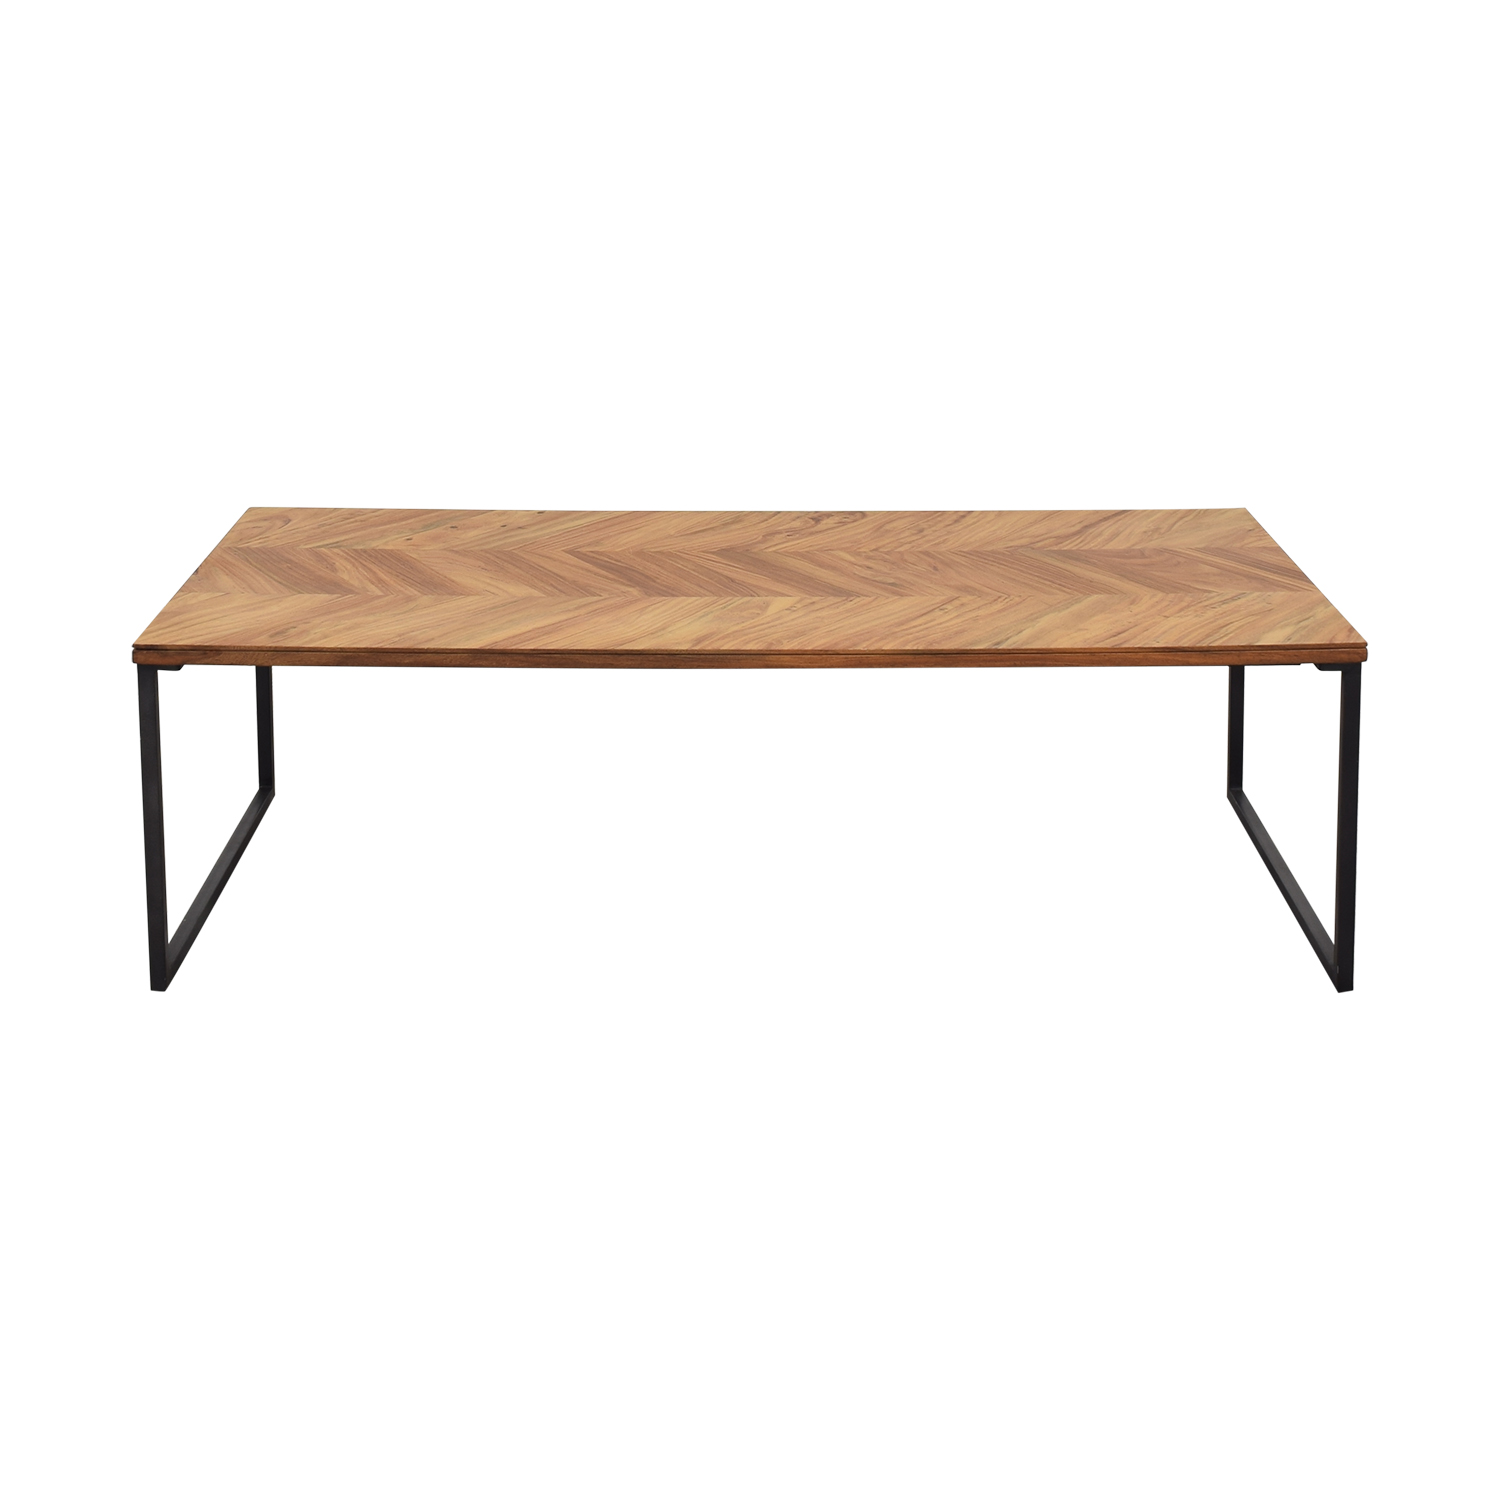 CB2 CB2 Chevron Coffee Table brown